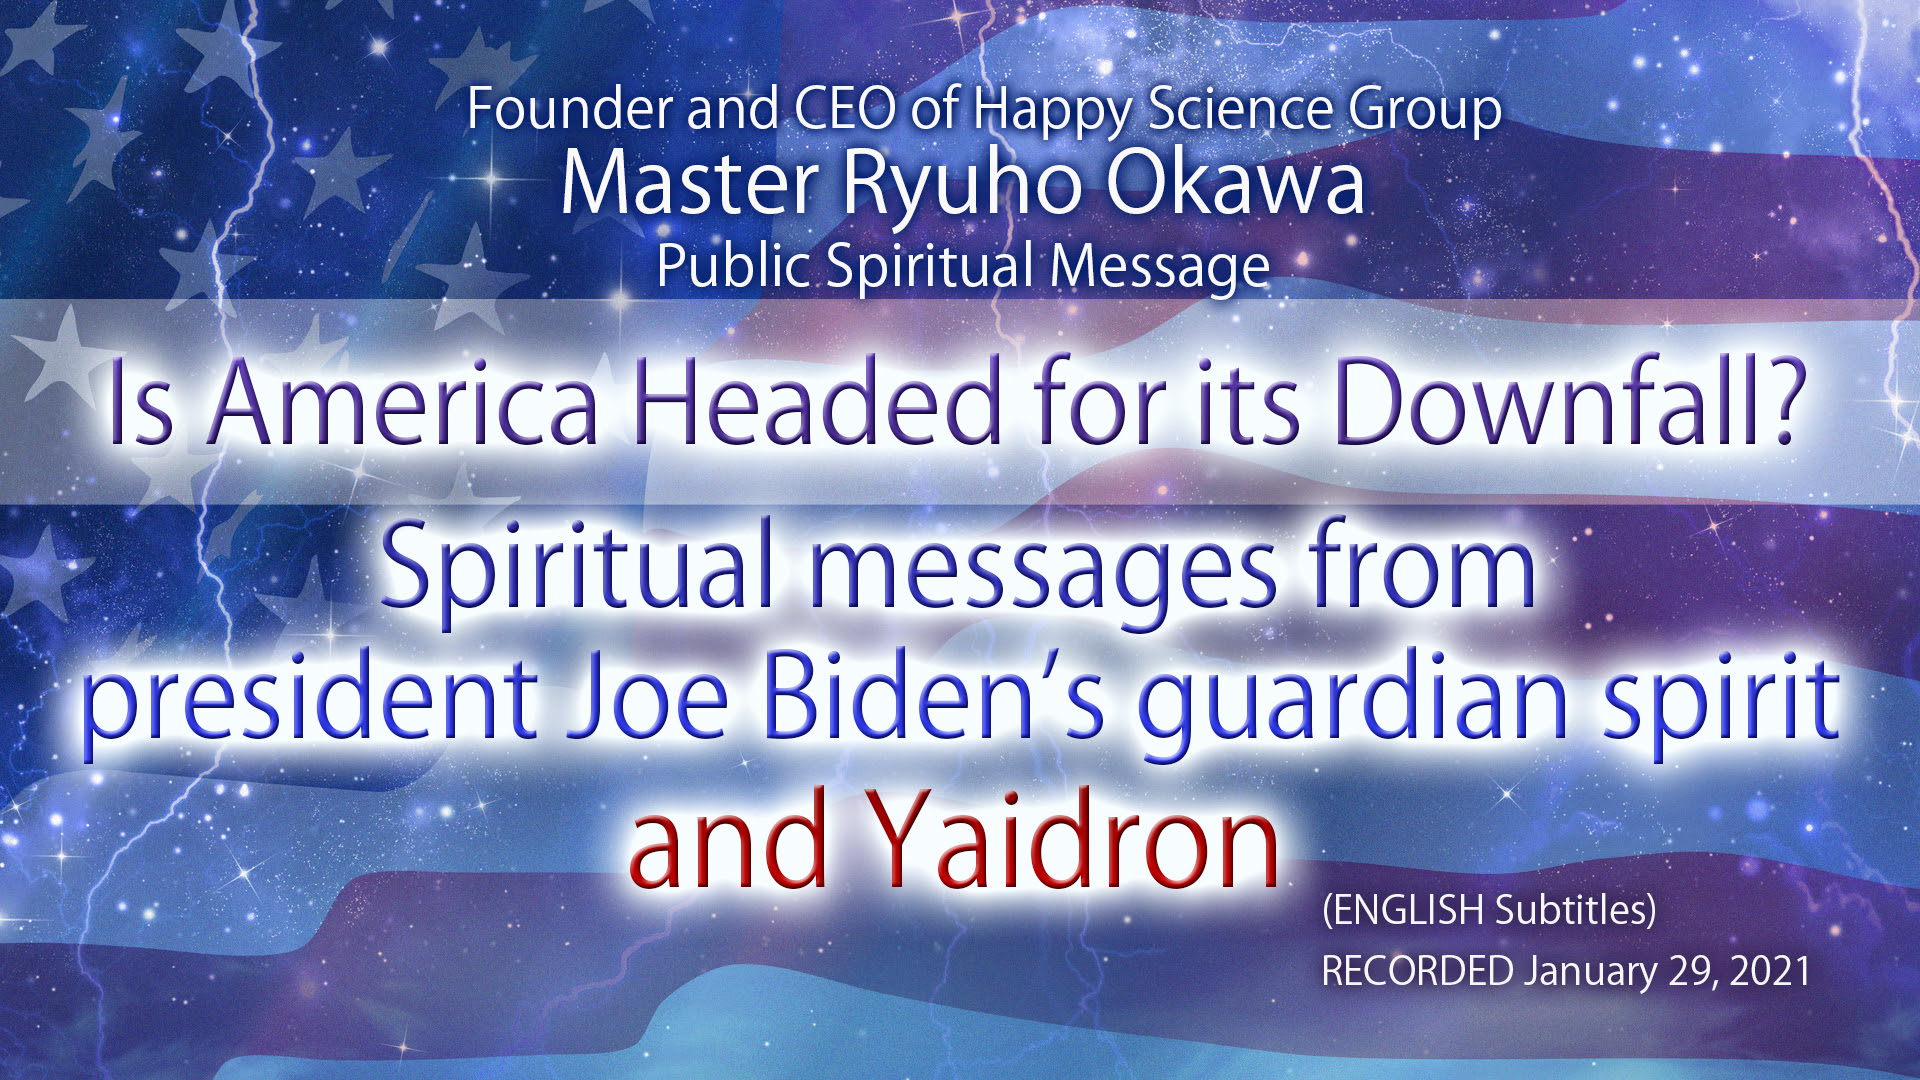 Is America Headed for its Downfall? —Spiritual messages from president Joe Biden's guardian spirit and Yaidron